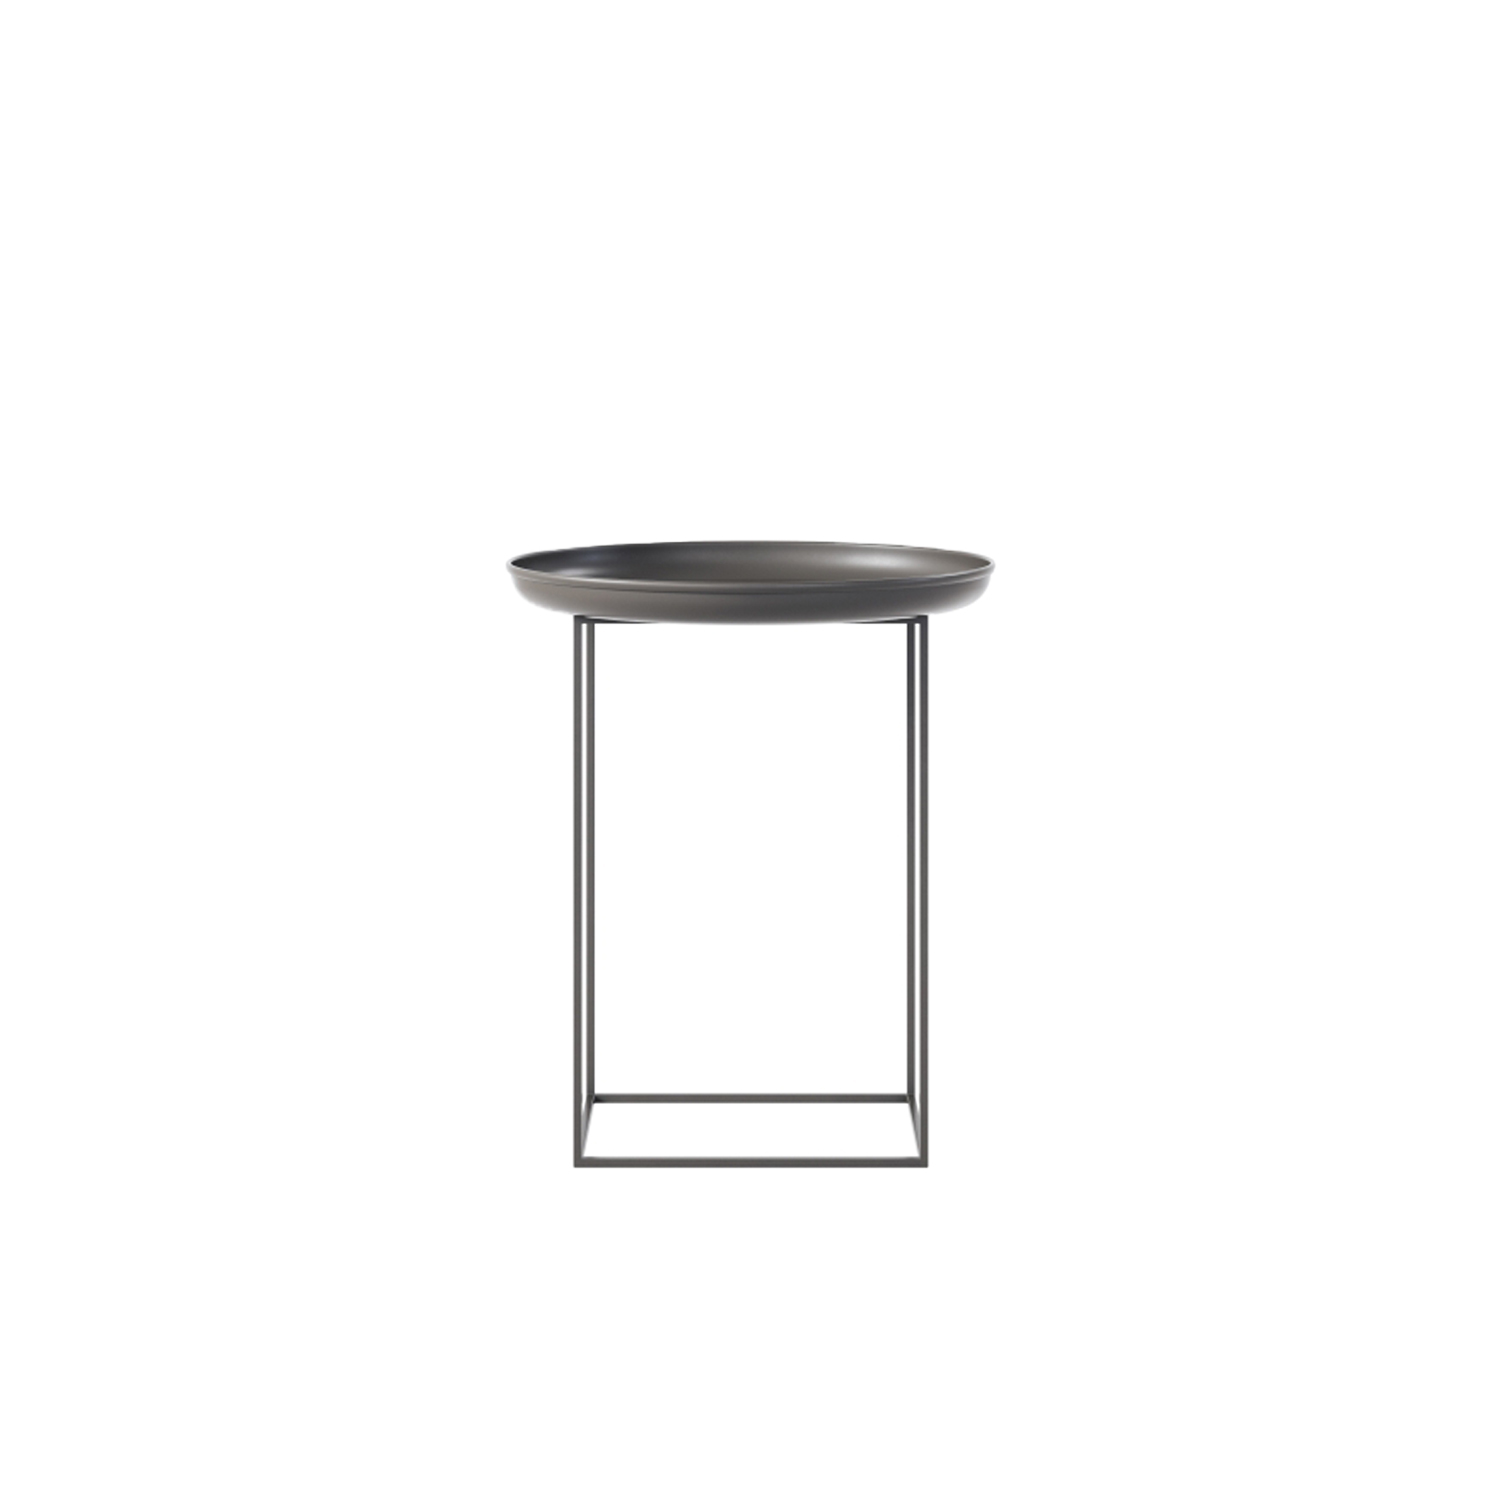 Duke Side Table - Small - The Duke tables are a series of multi-functional side and coffee tables with a spun metal tray loosely placed on top of a metal frame. The tables come in small, medium and large and can easily be adapted to fit your needs, with the medium size particularly functional. The base can be rotated onto its different faces to create three different table heights, making them suitable to fit any height of sofa or to be used as a bedside table. When all three sizes are placed together they create a nice landscape that compliments any sofa.  | Matter of Stuff